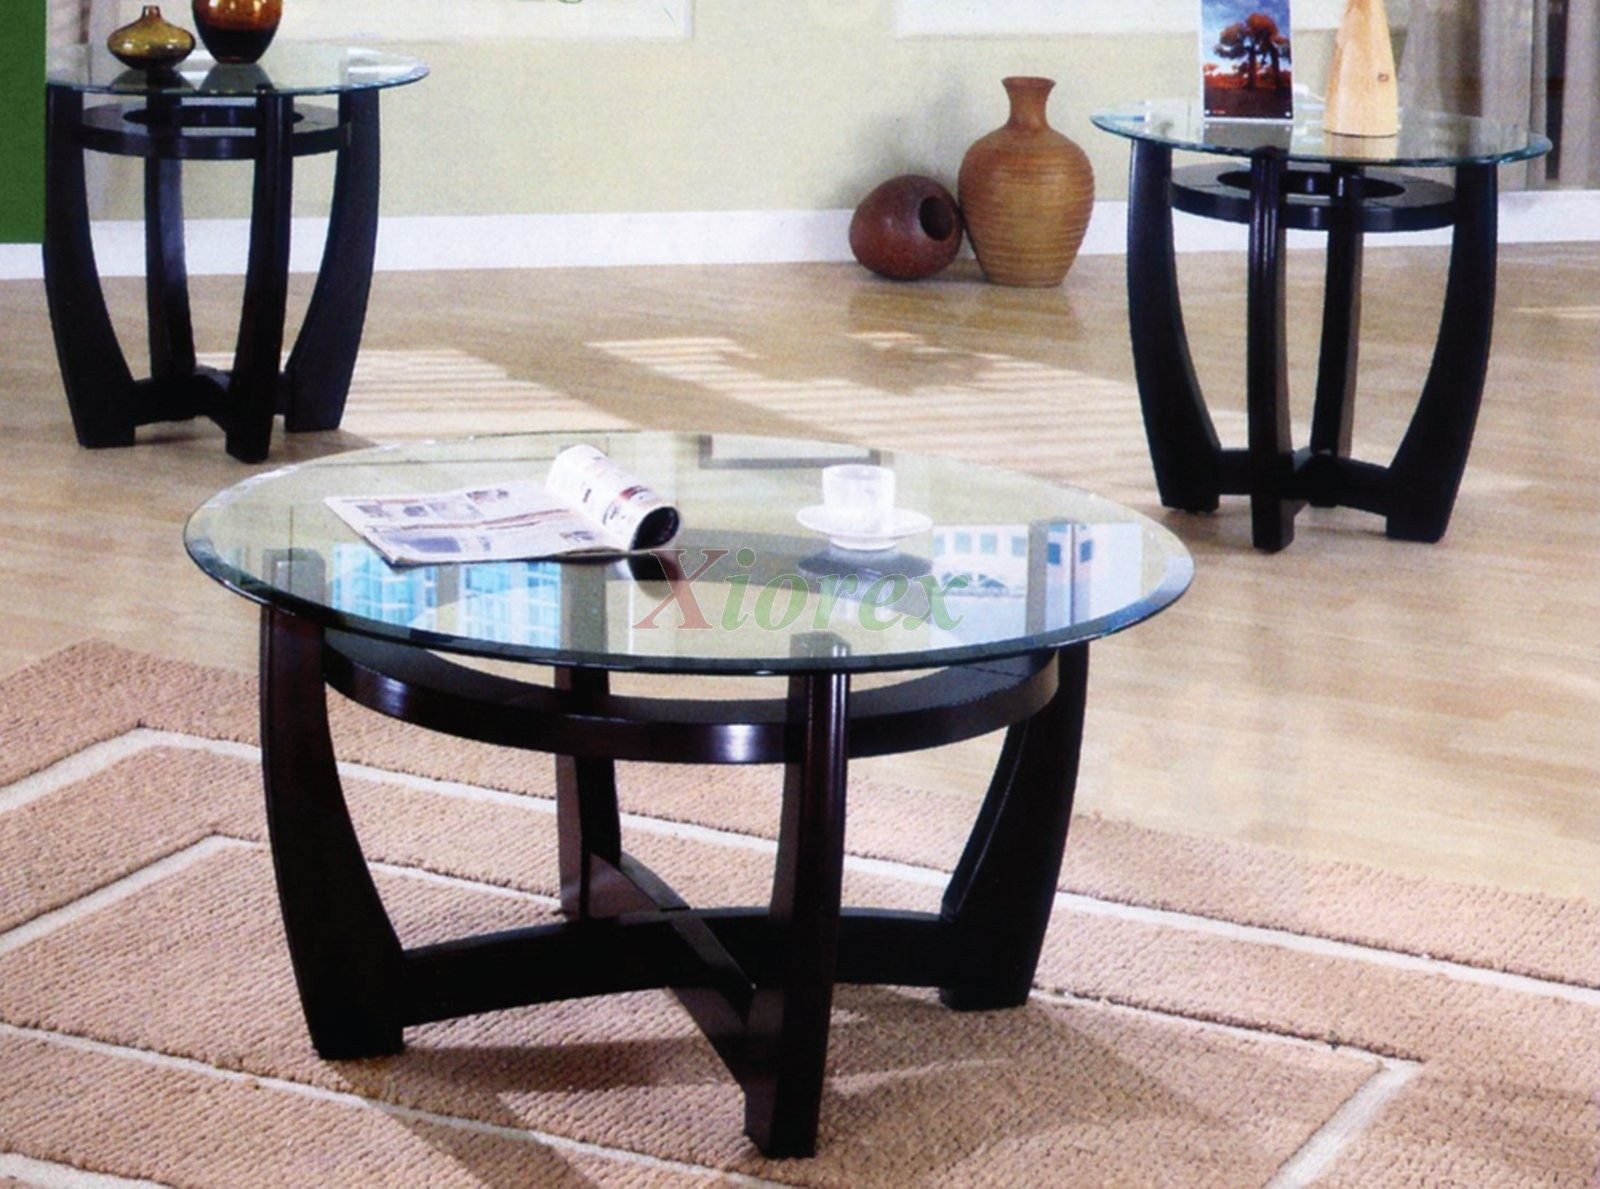 Living Room 3 Piece Table Sets ursa 3 piece living room table set | xiorex